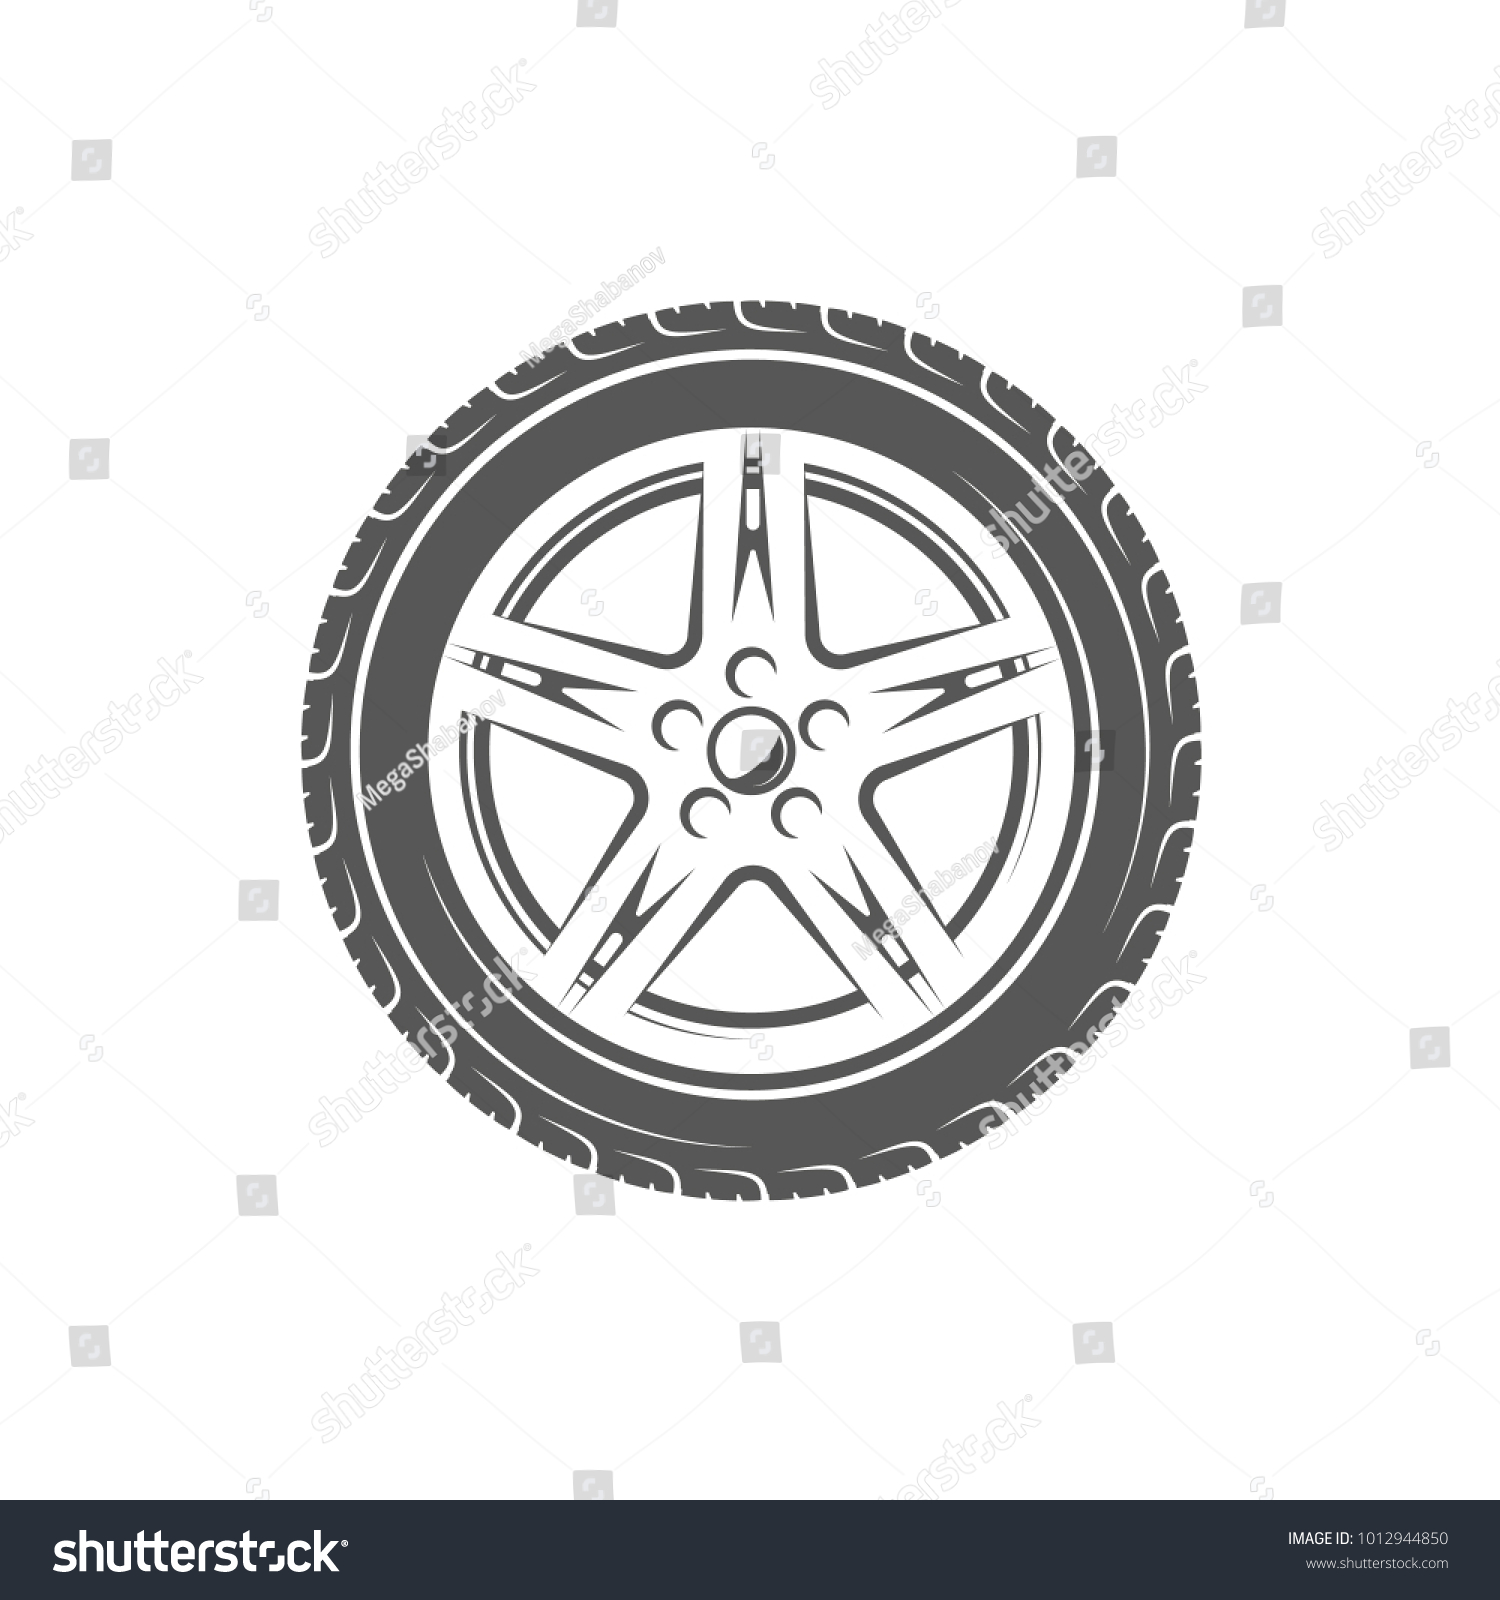 Element car service wheel isolated on stock vector 1012944850 element of the car service wheel isolated on white background symbol for car service biocorpaavc Choice Image